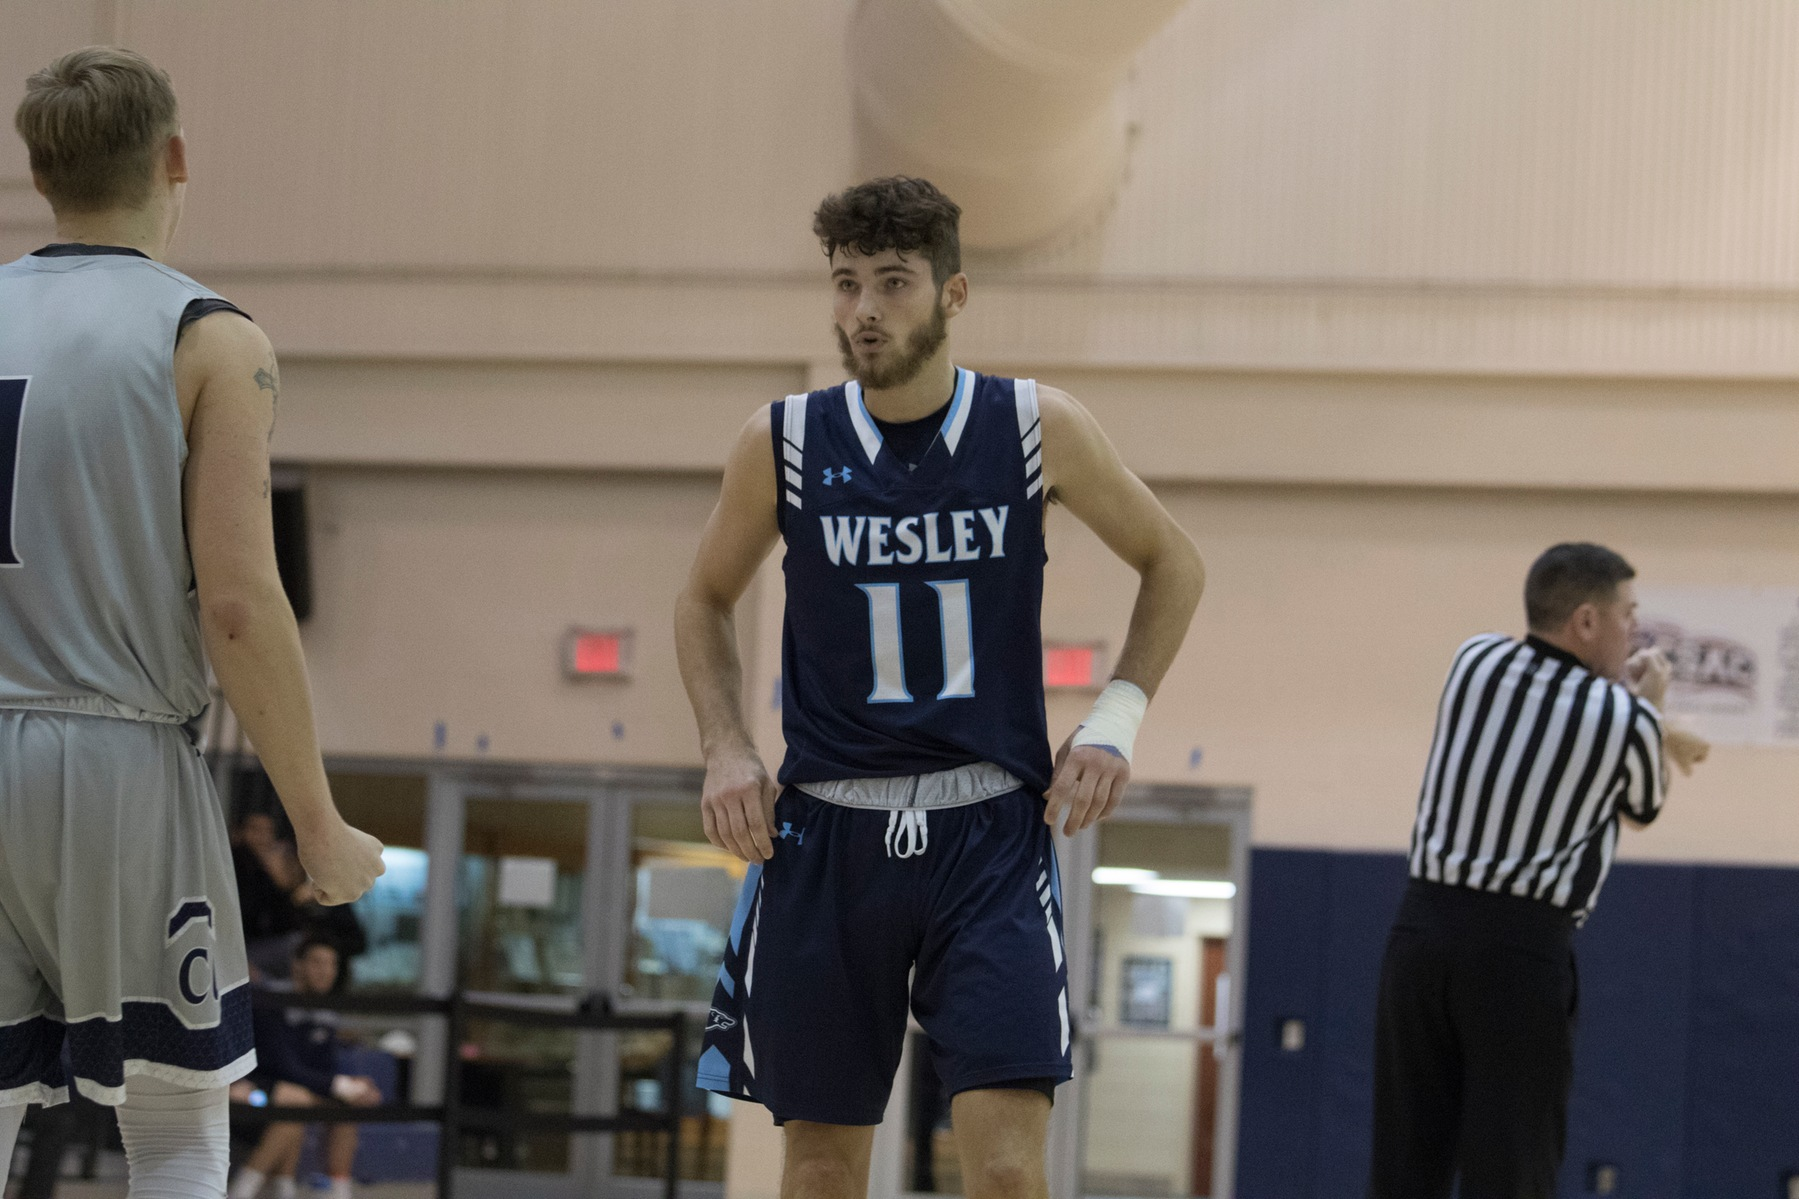 Men's Basketball Takes Game Two with a Come from Behind Win over SUNY-Oneonta